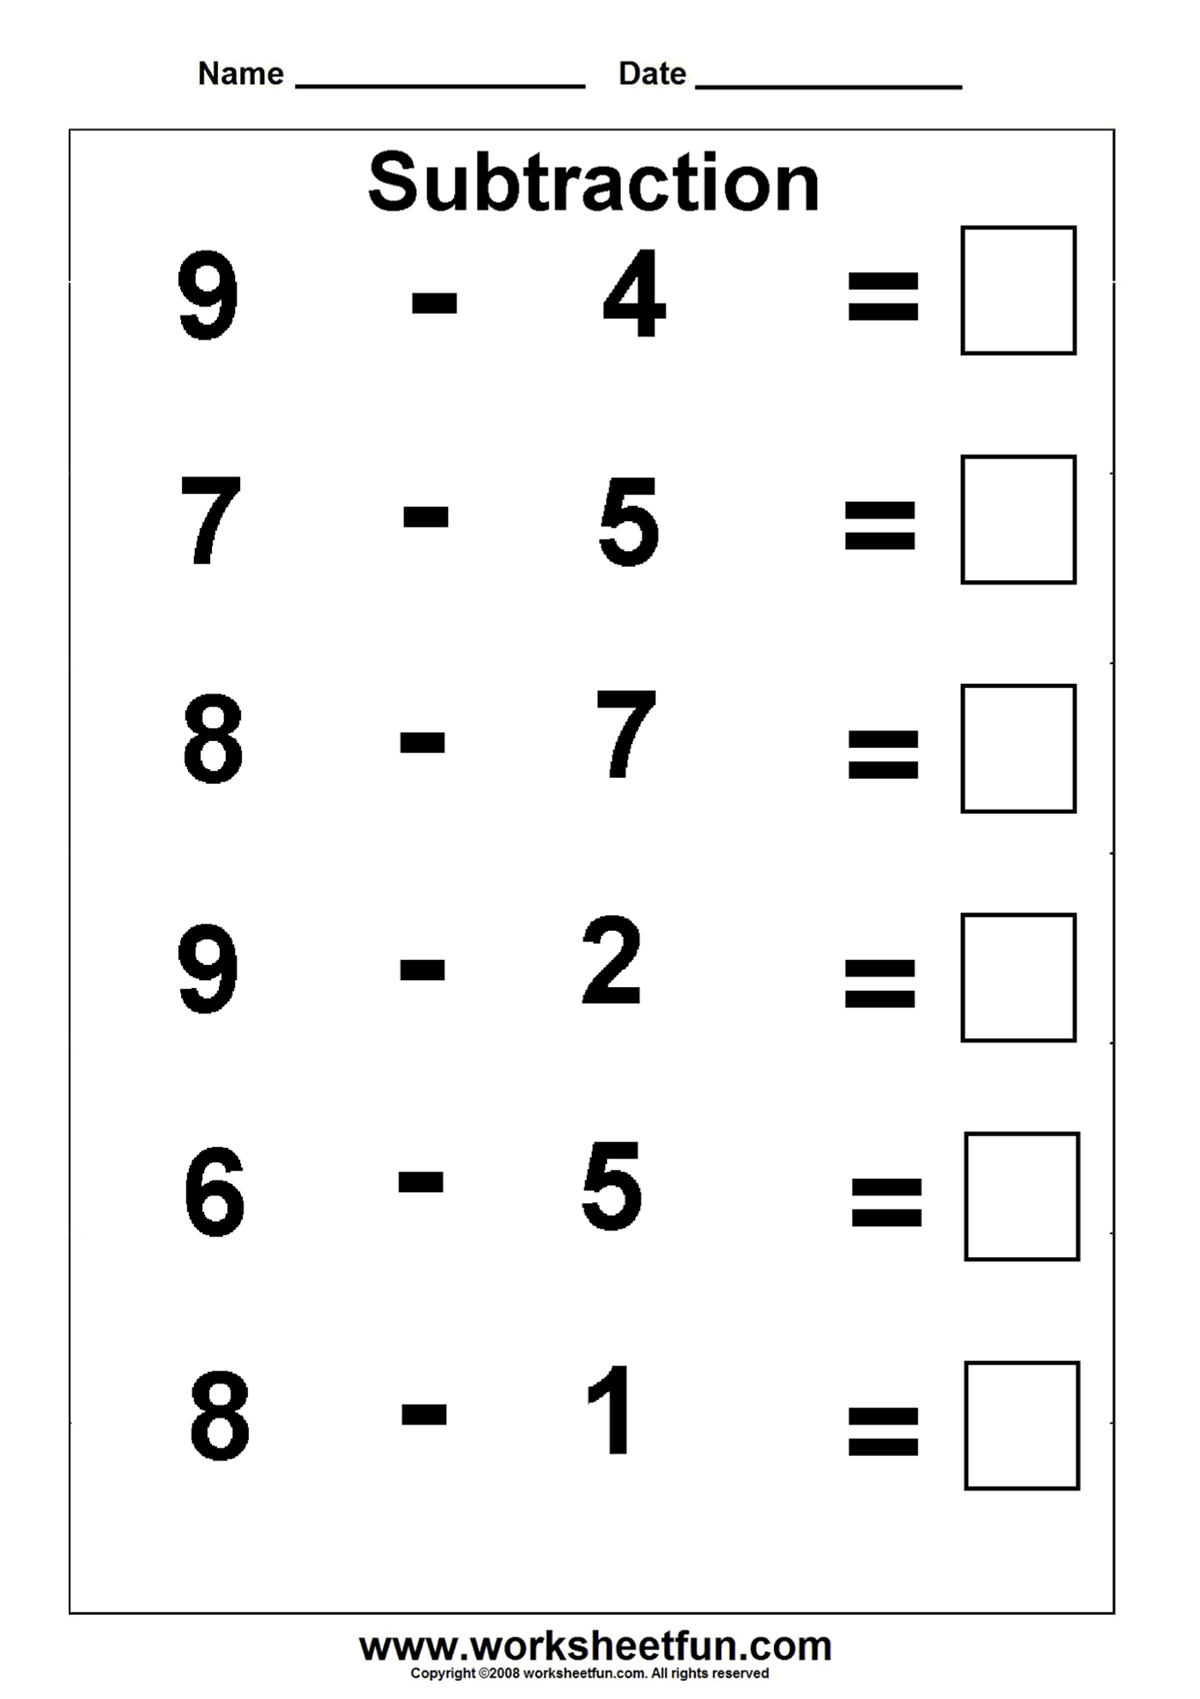 Subtraction Worksheet